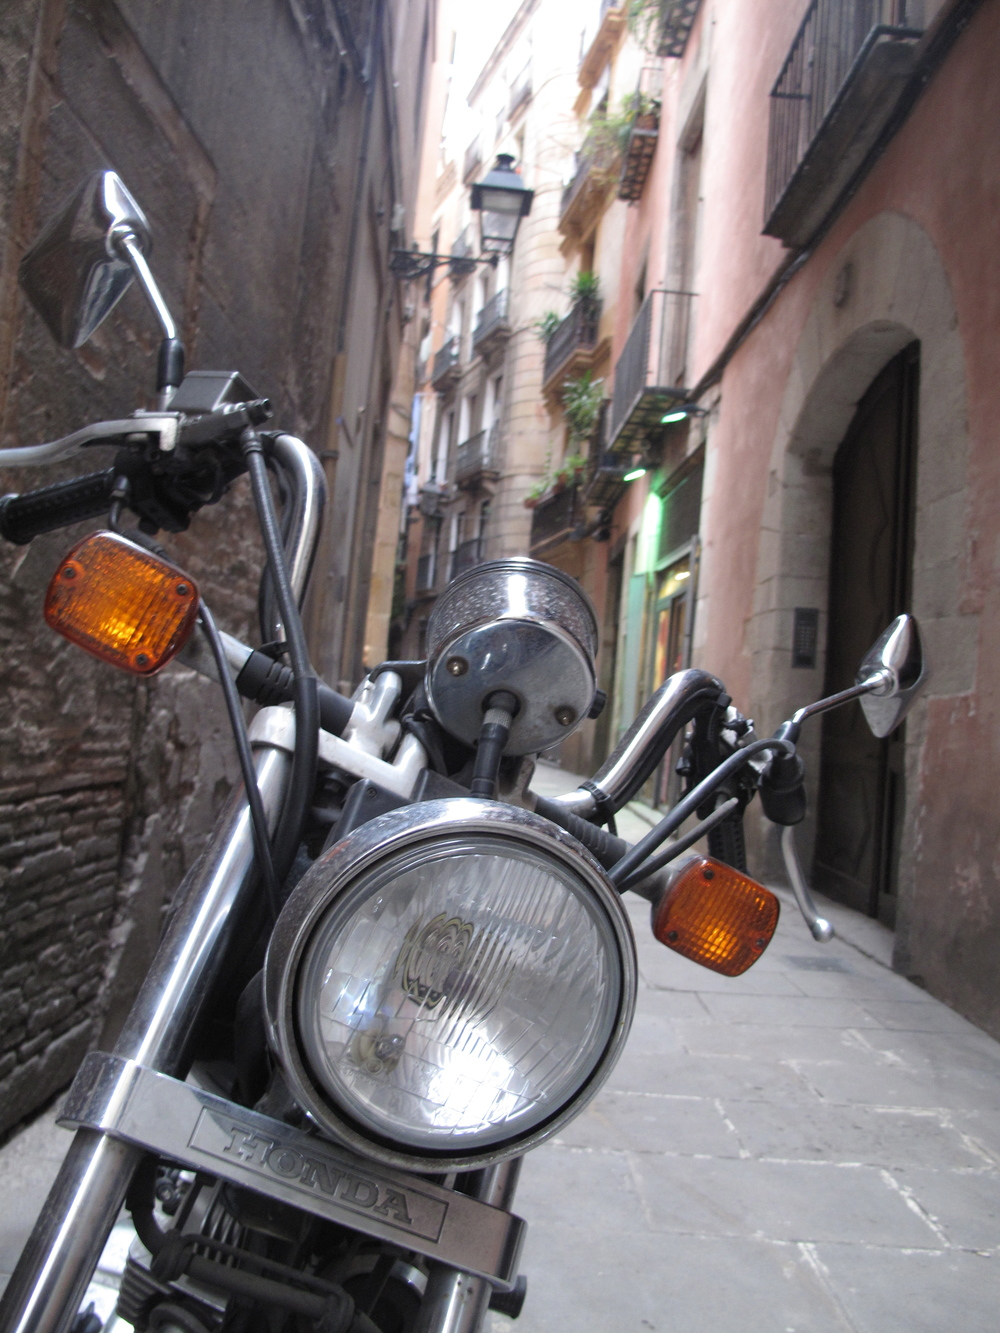 Scooter headlamp, Barcelona alleyway.